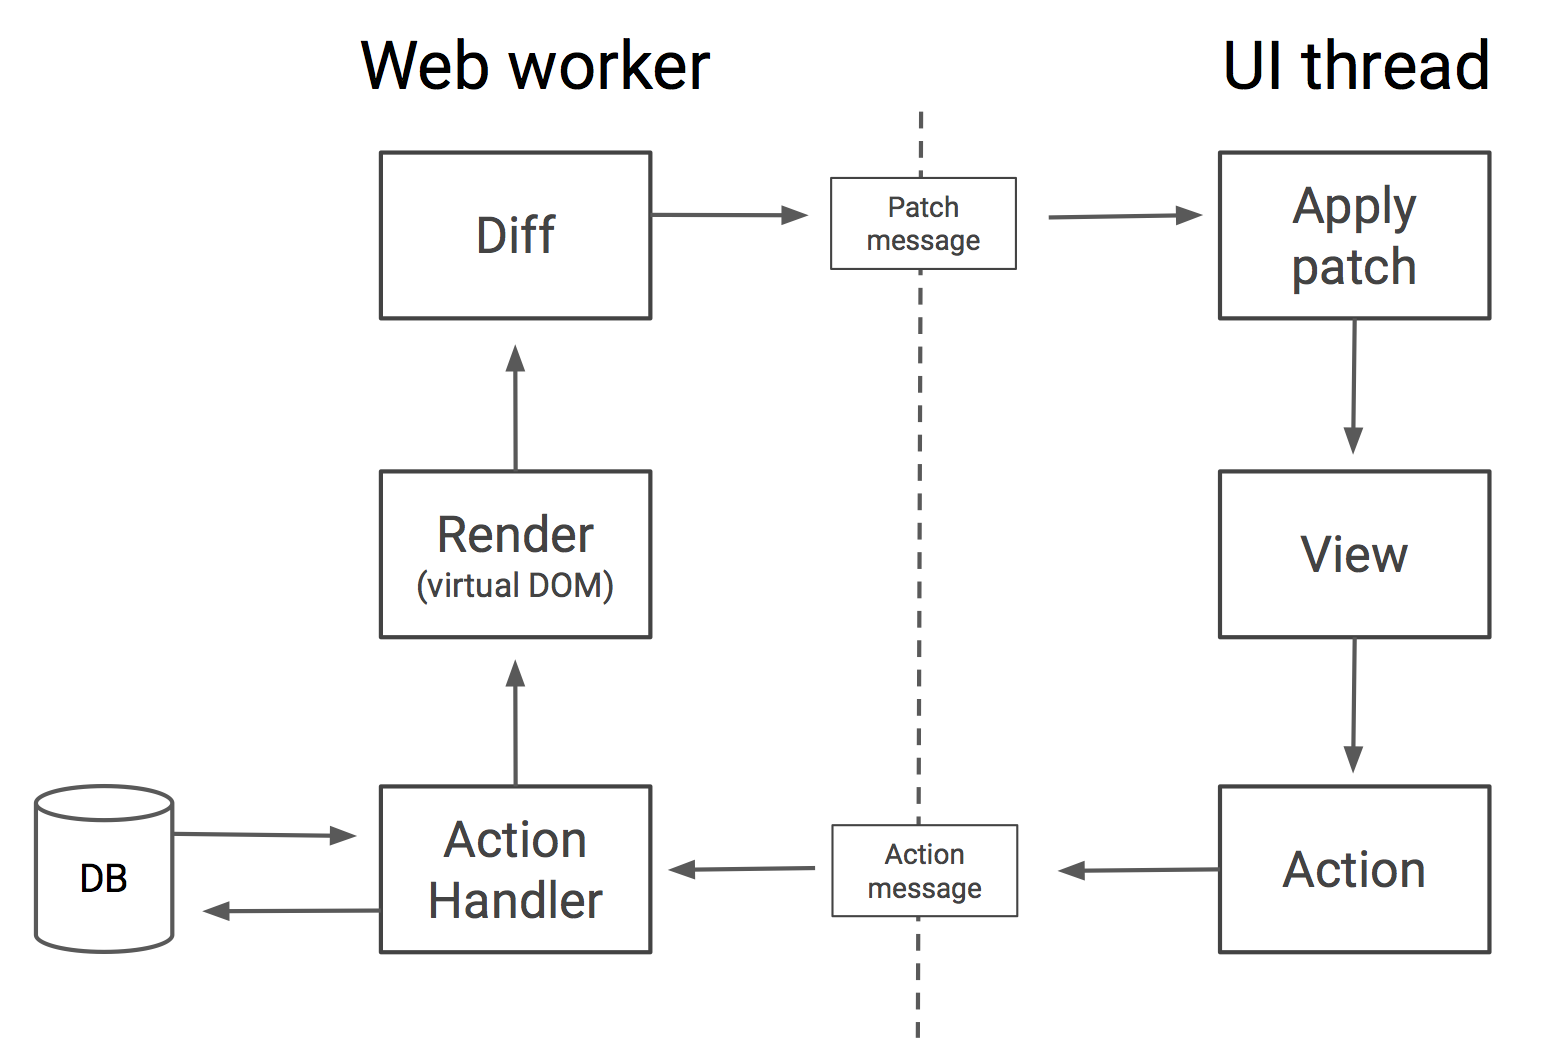 Diagram showing the web worker handling the actions, rendering virtual dom, and diffing, and the UI thread handling applying the patch, generating the view, and dispatching an action